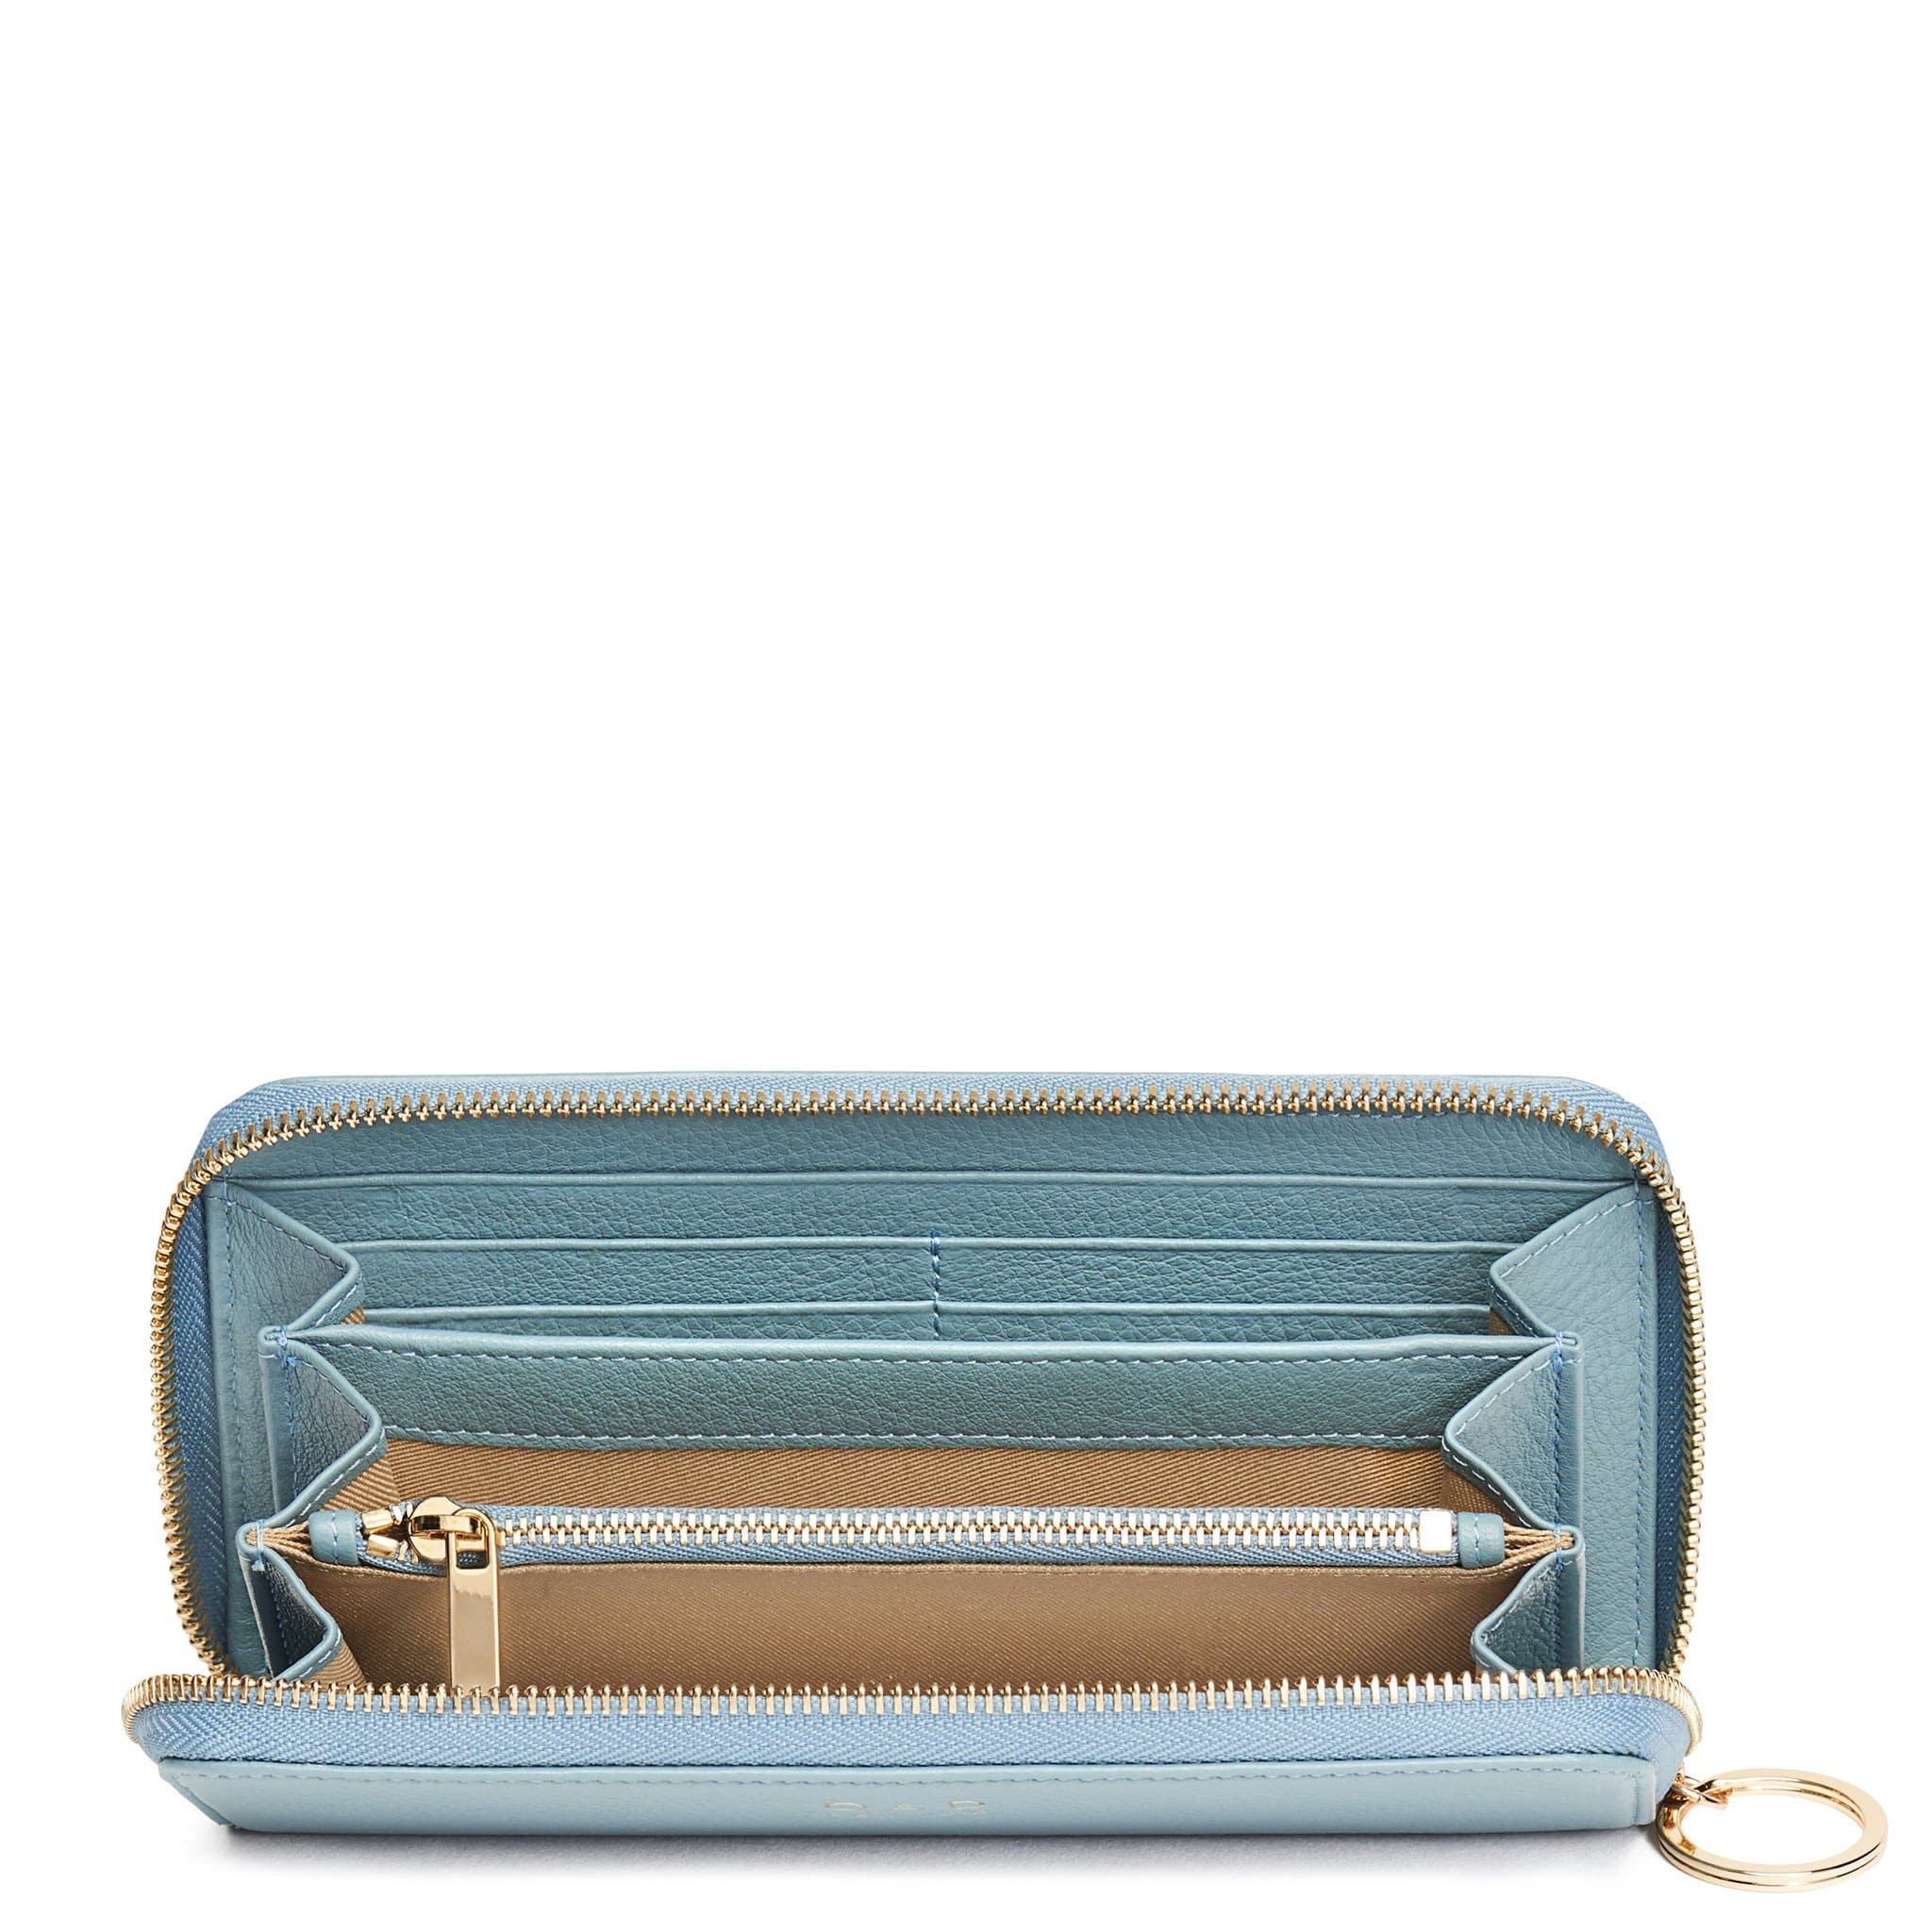 Full Zip Around Wallet - Powder Blue - OAD NEW YORK - 2